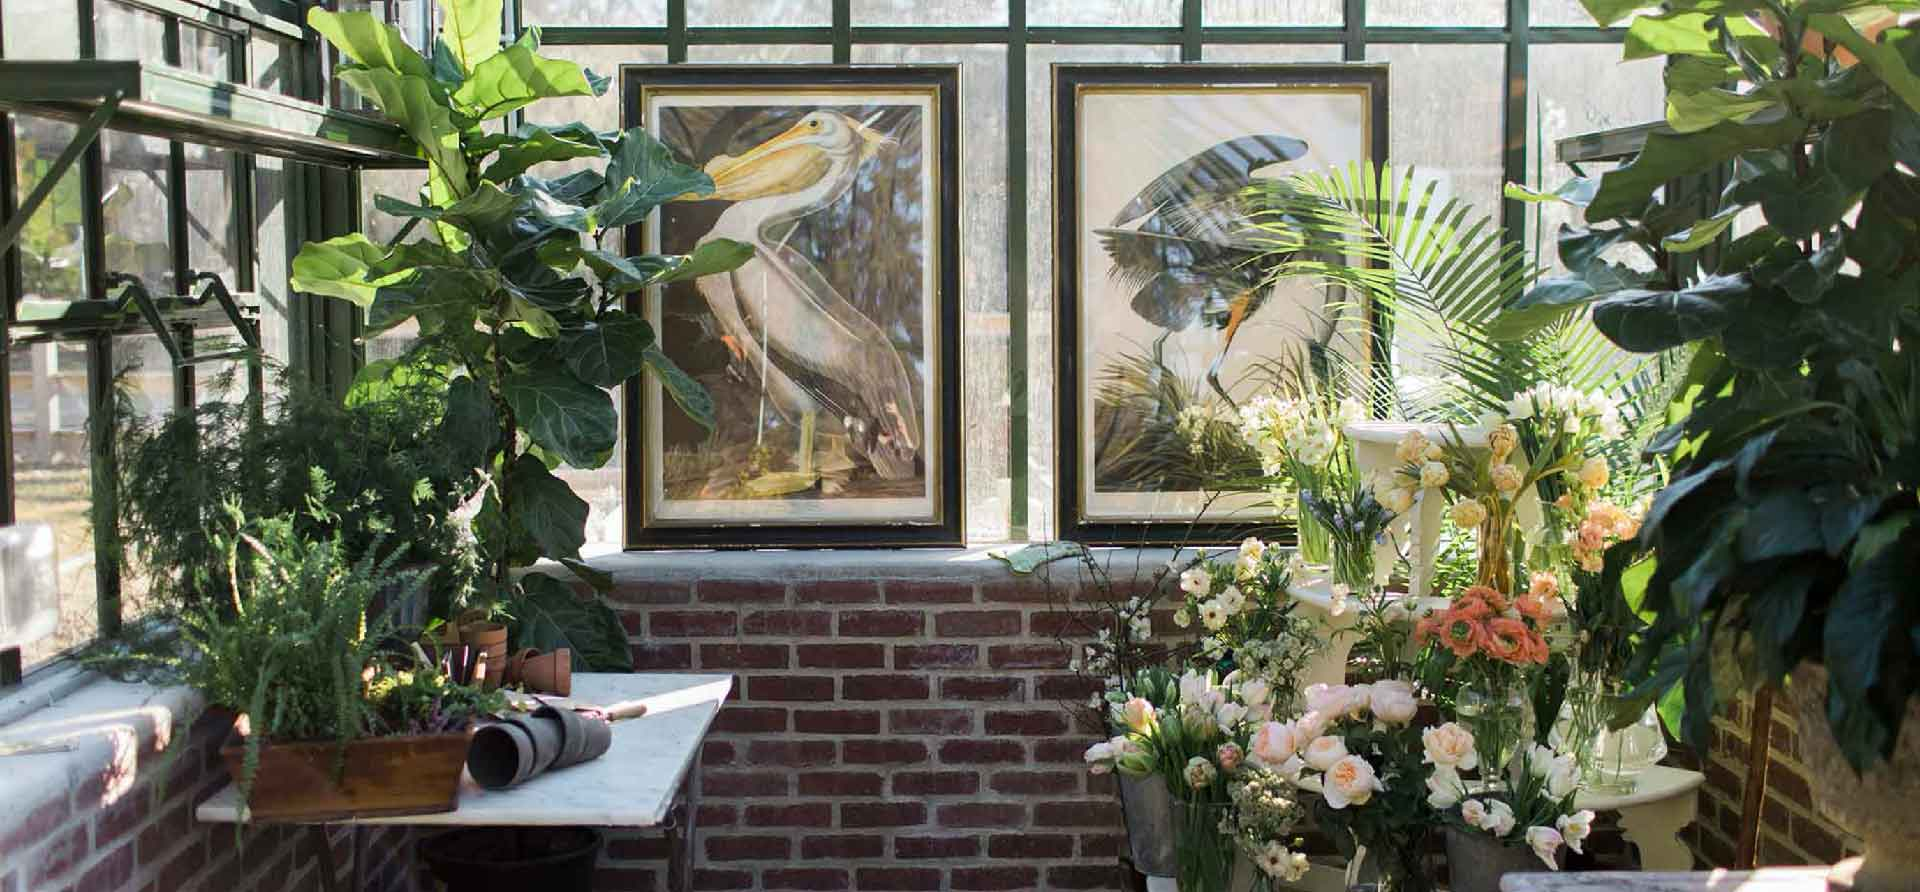 Wintergarden interior with old paintings